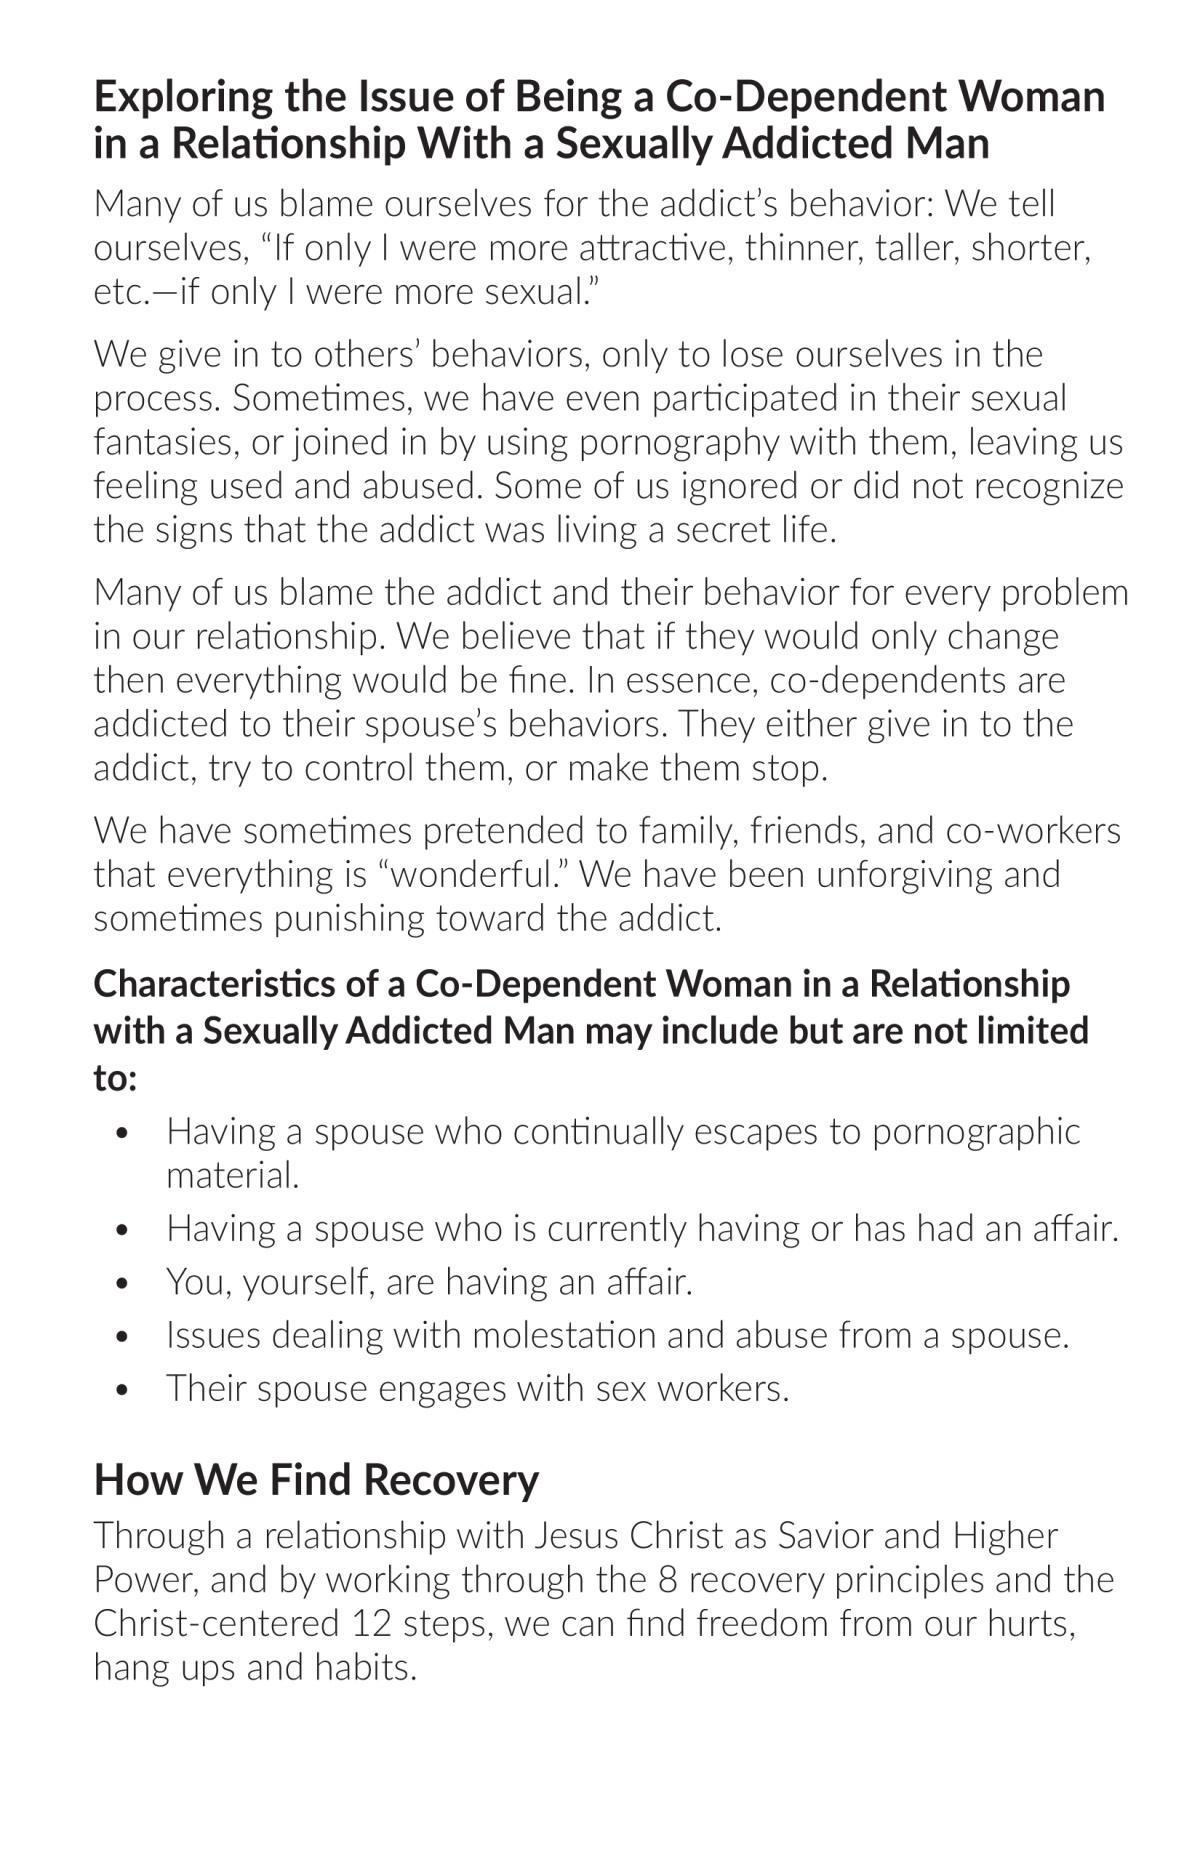 Co-Dependent Women in a Relationship with a Sexually Addicted Man